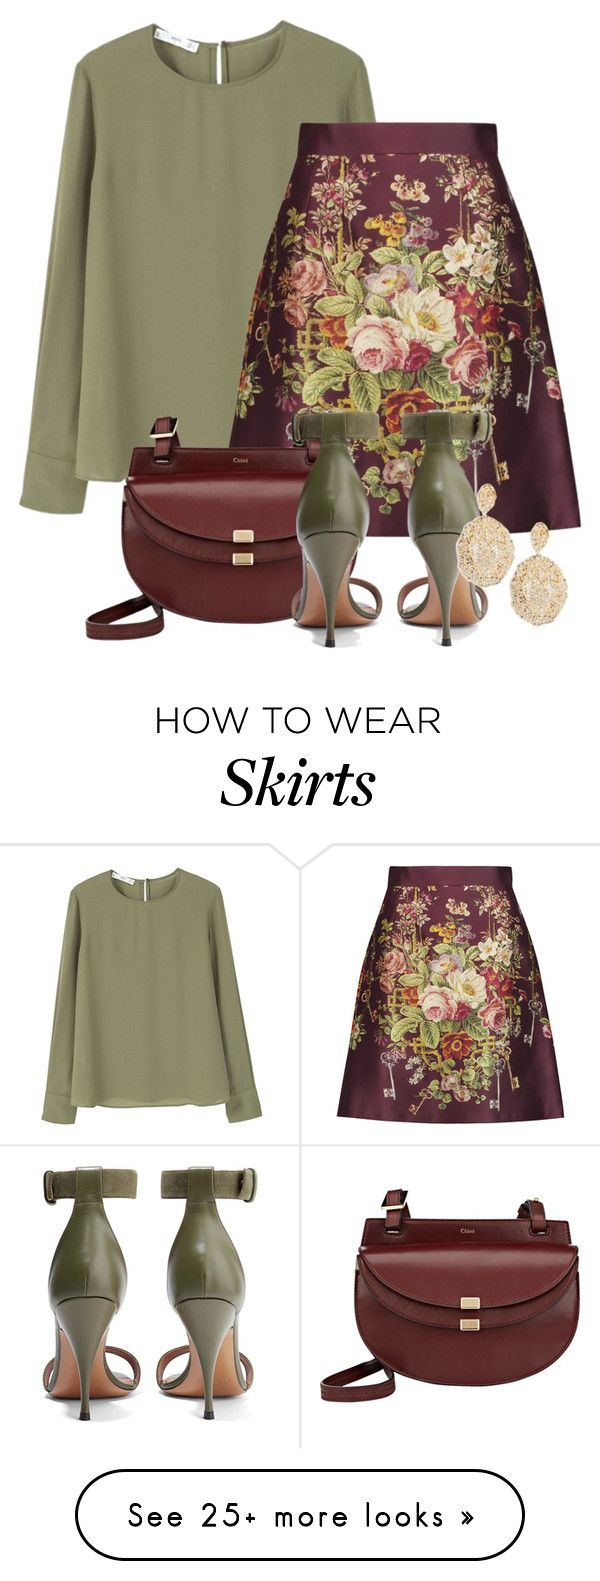 """""""Friday Work Outfit"""" by christined1960 on Polyvore featuring MANGO, Dolce&Gabbana, Chloé, Givenchy and Aurélie Bidermann"""